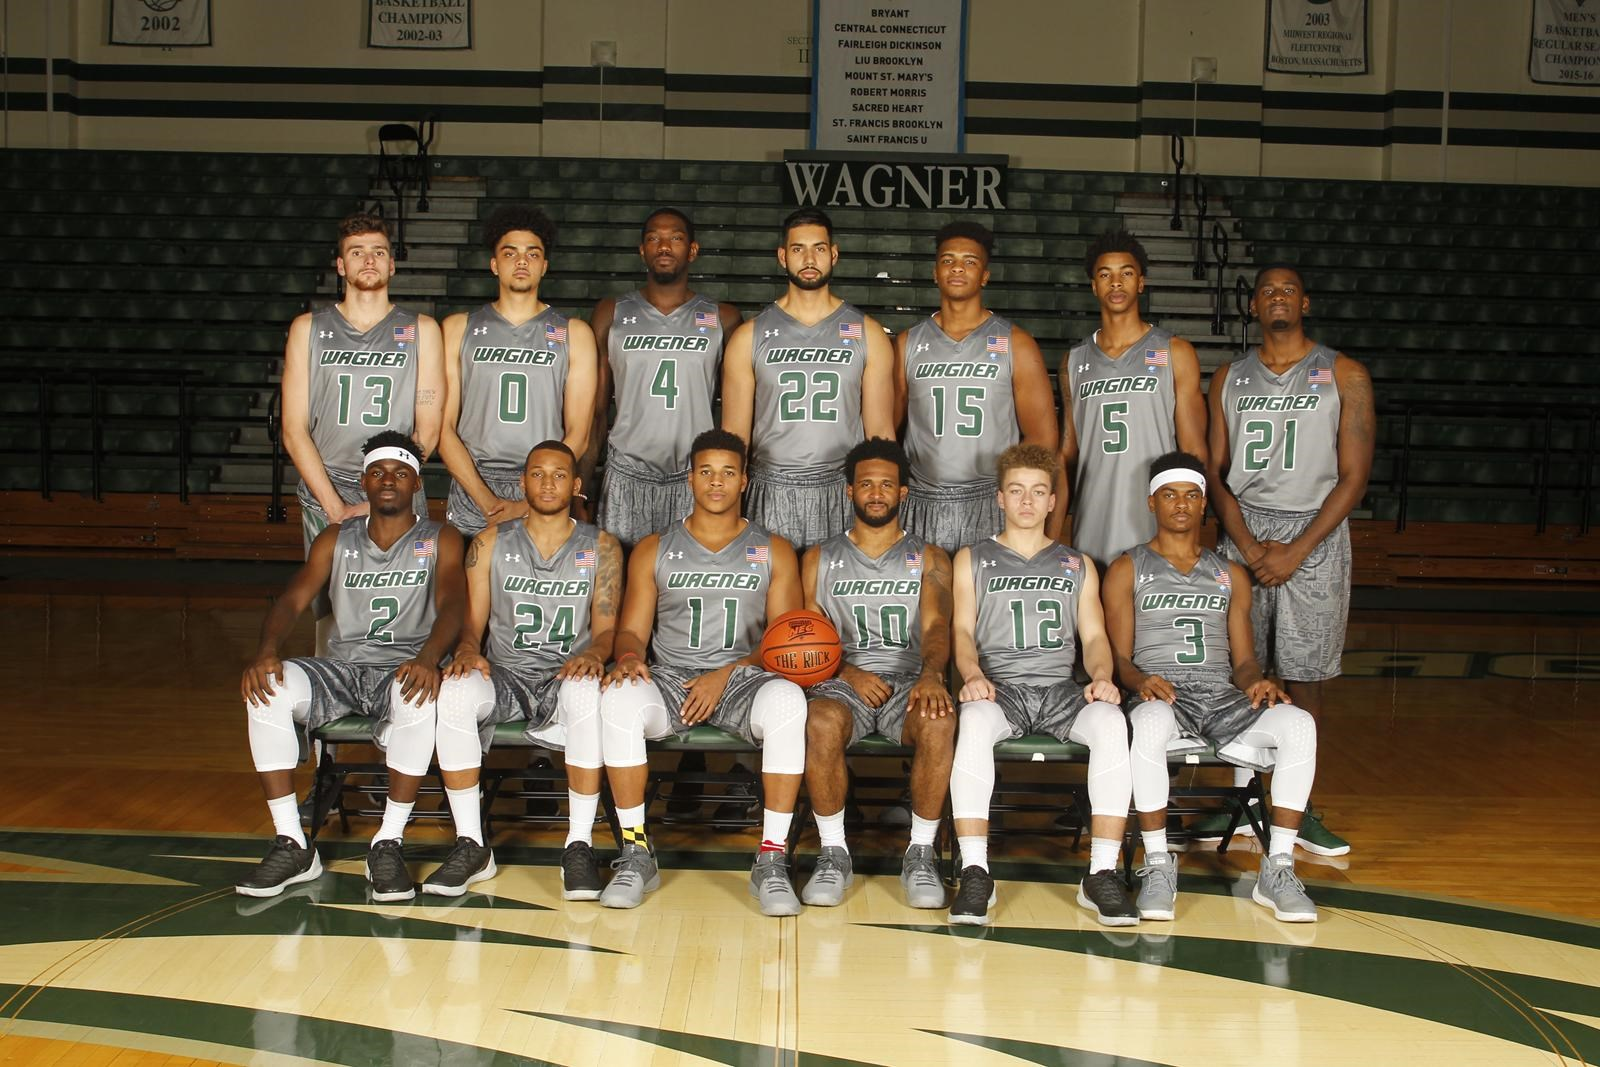 reputable site 0566e 59f0d 2017-2018 Men's Basketball Roster - Wagner College Athletics